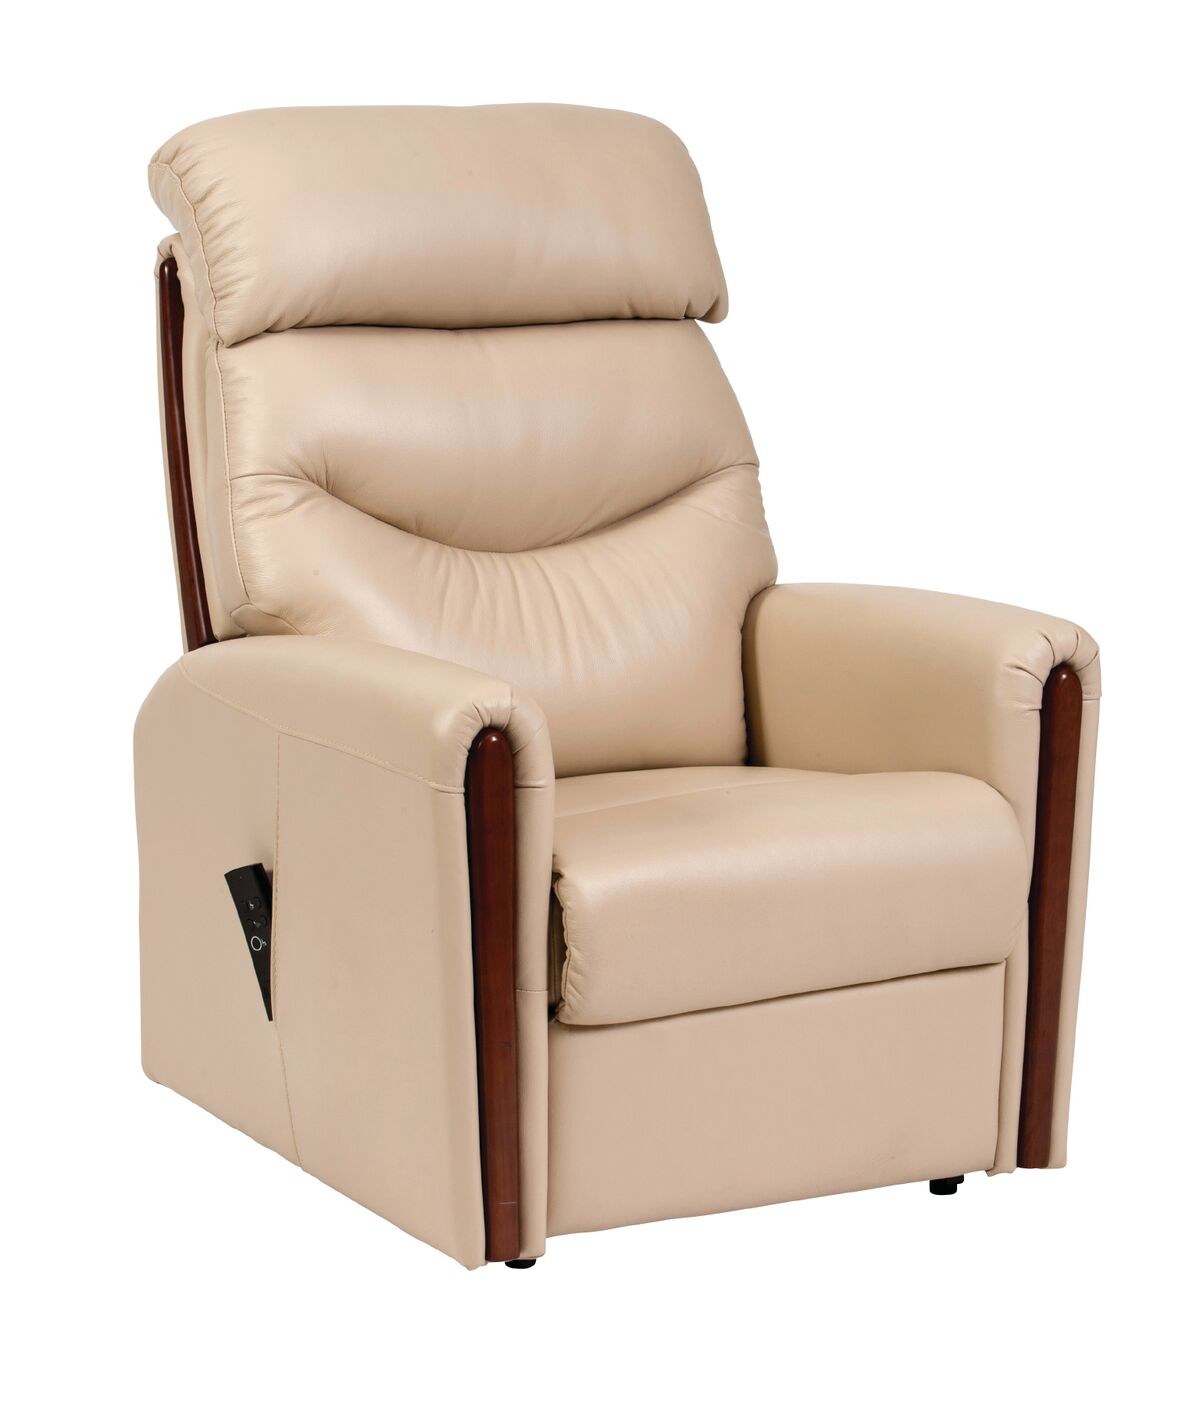 Cavendish Dual Motor Riser Recliner - Available to see in Menai Bridge & Valley